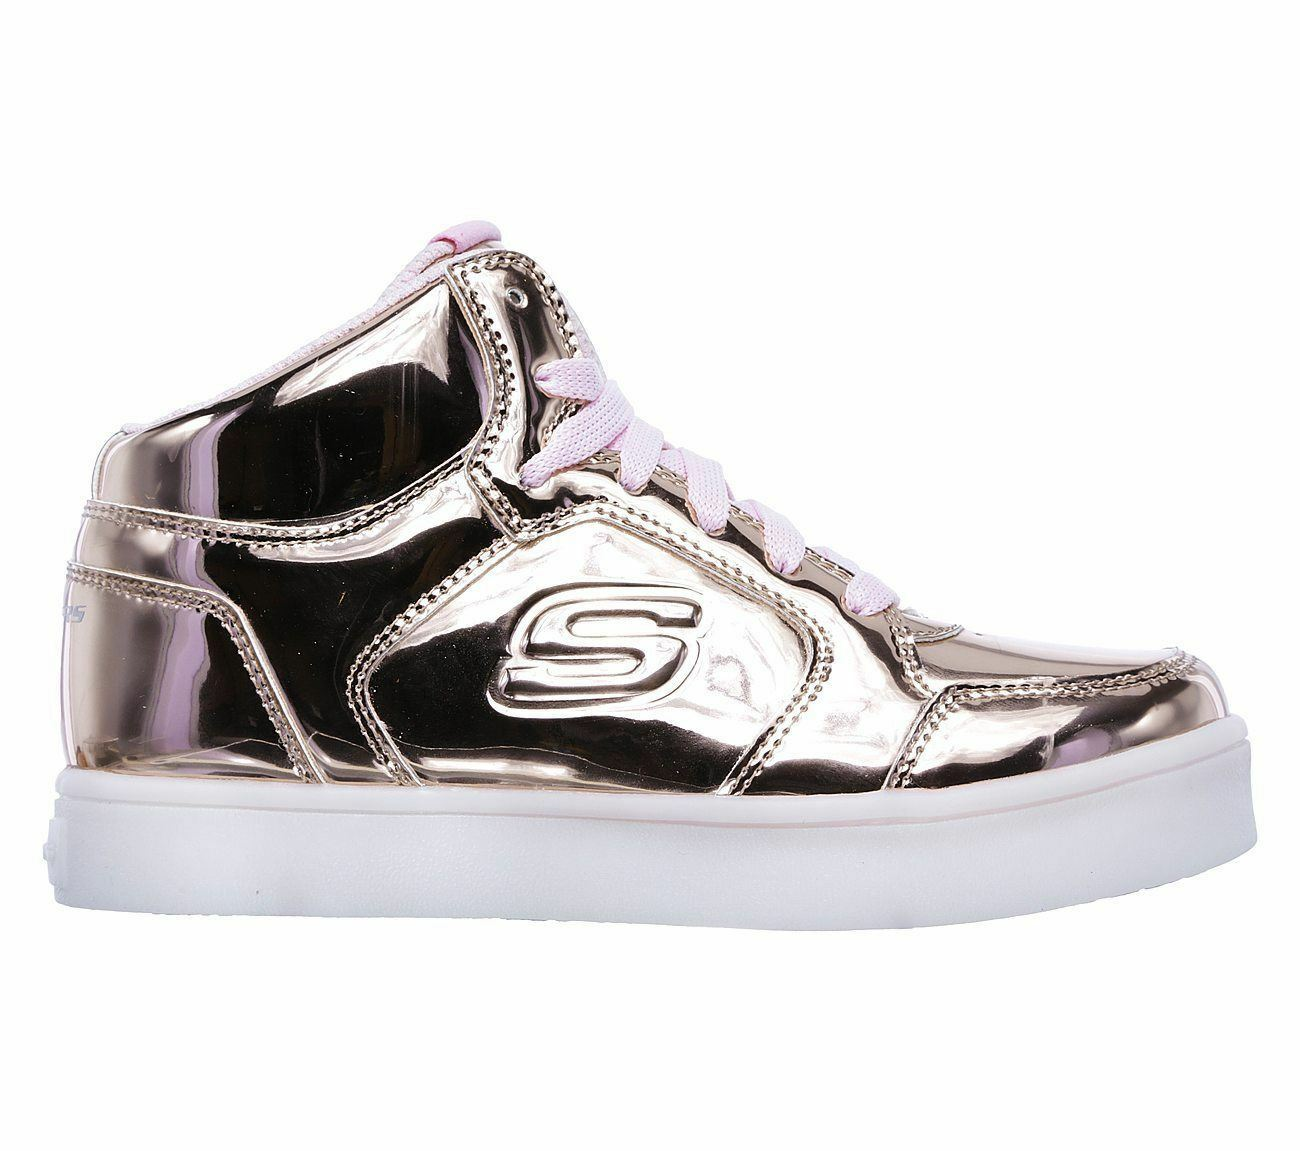 SKECHERS 10771 RSGD Rose Gold S Lights Energy Lights